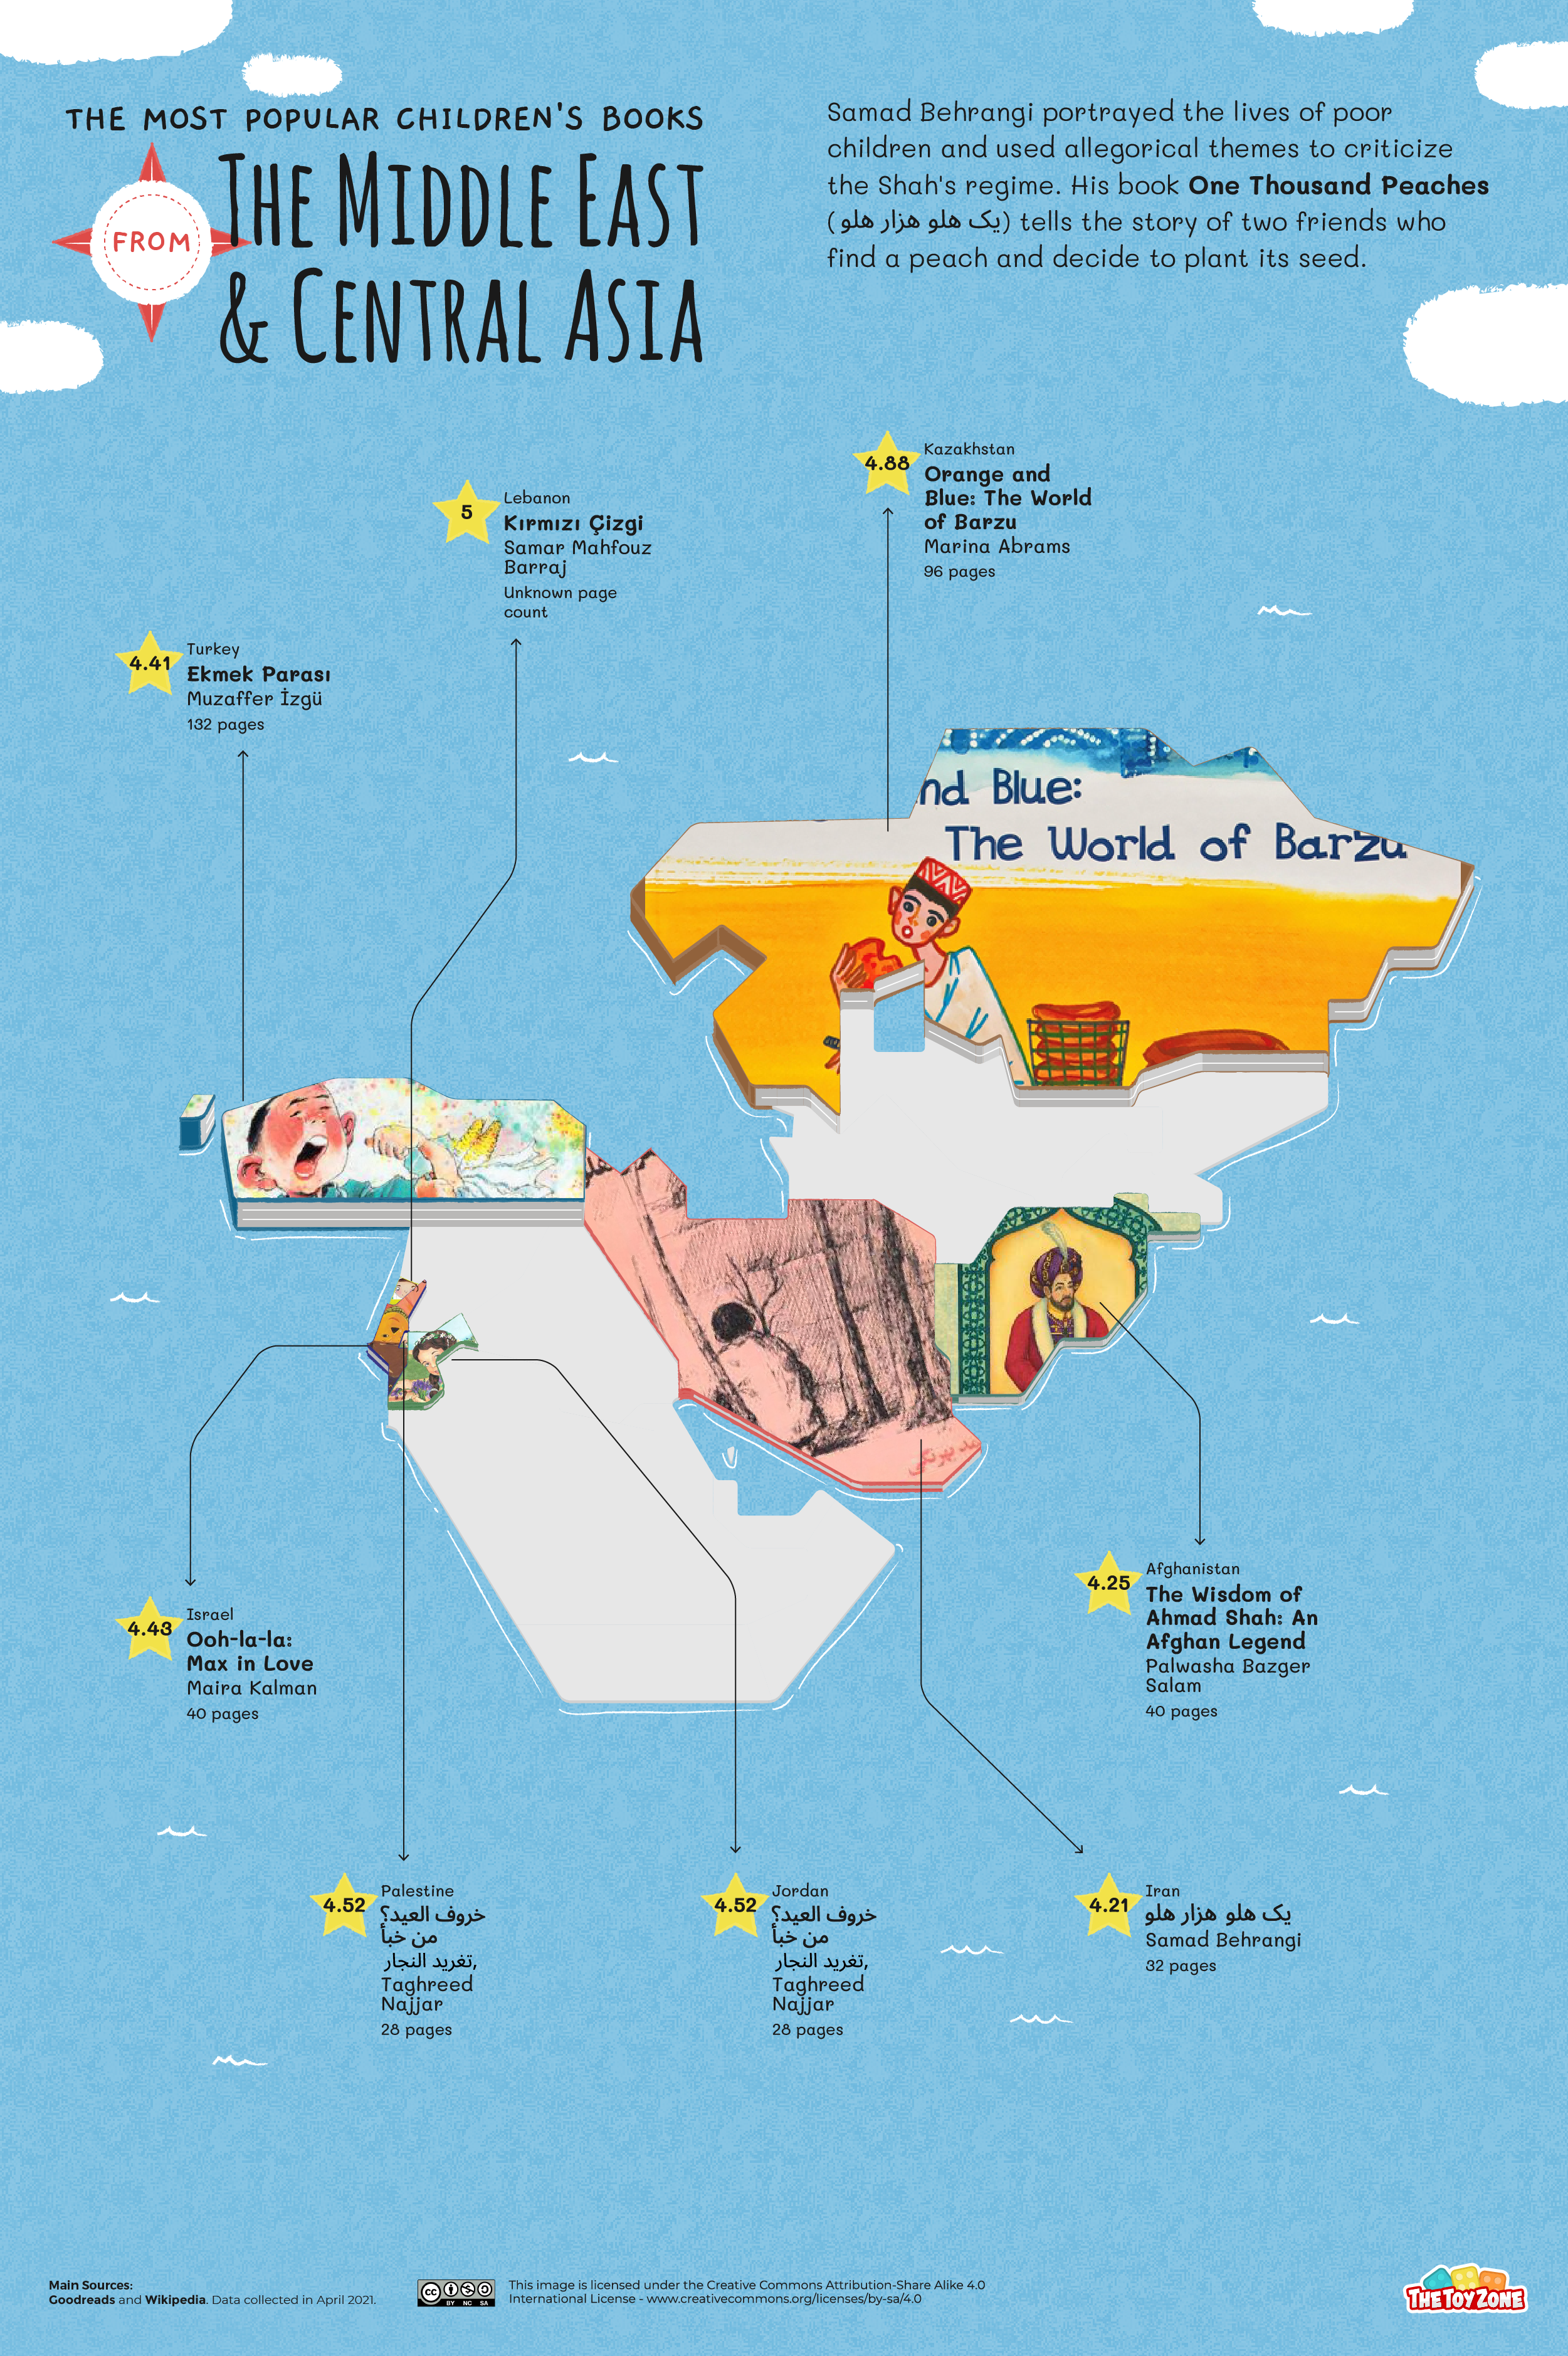 Most popular children's books in Middle East and Central Asia map